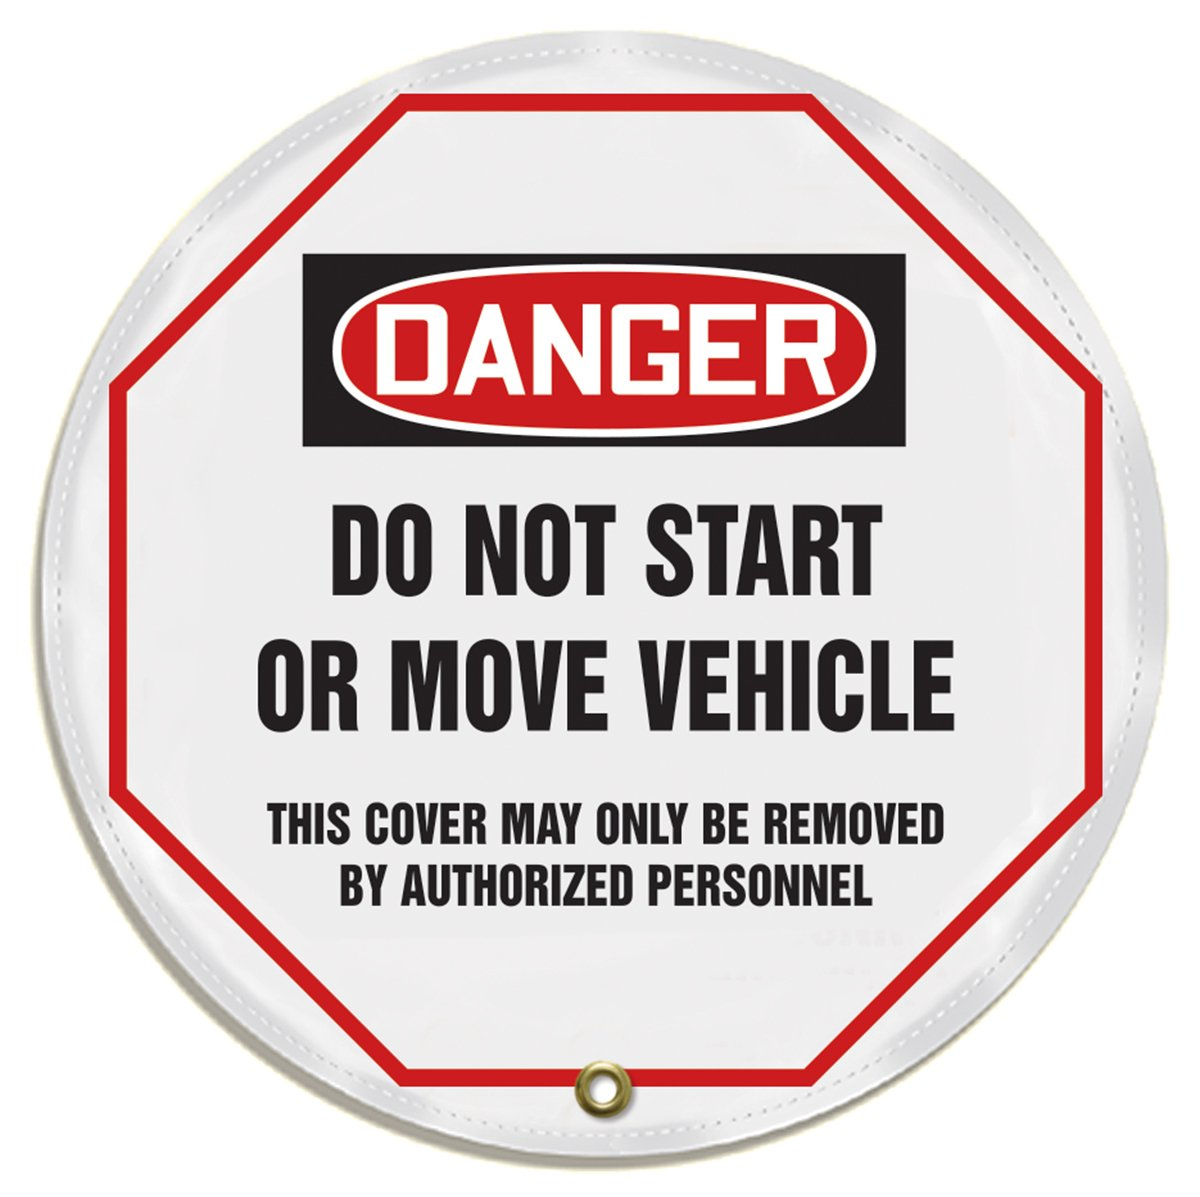 Accuform KDD814 STOPOUT Vinyl Steering Wheel Message Cover, OSHA-Style Legend ''DANGER DO NOT START OR MOVE VEHICLE - THIS COVER MAY ONLY BE REMOVED BY AUTHORIZED PERSONNEL'', 16'' Diameter, Red/Black on White